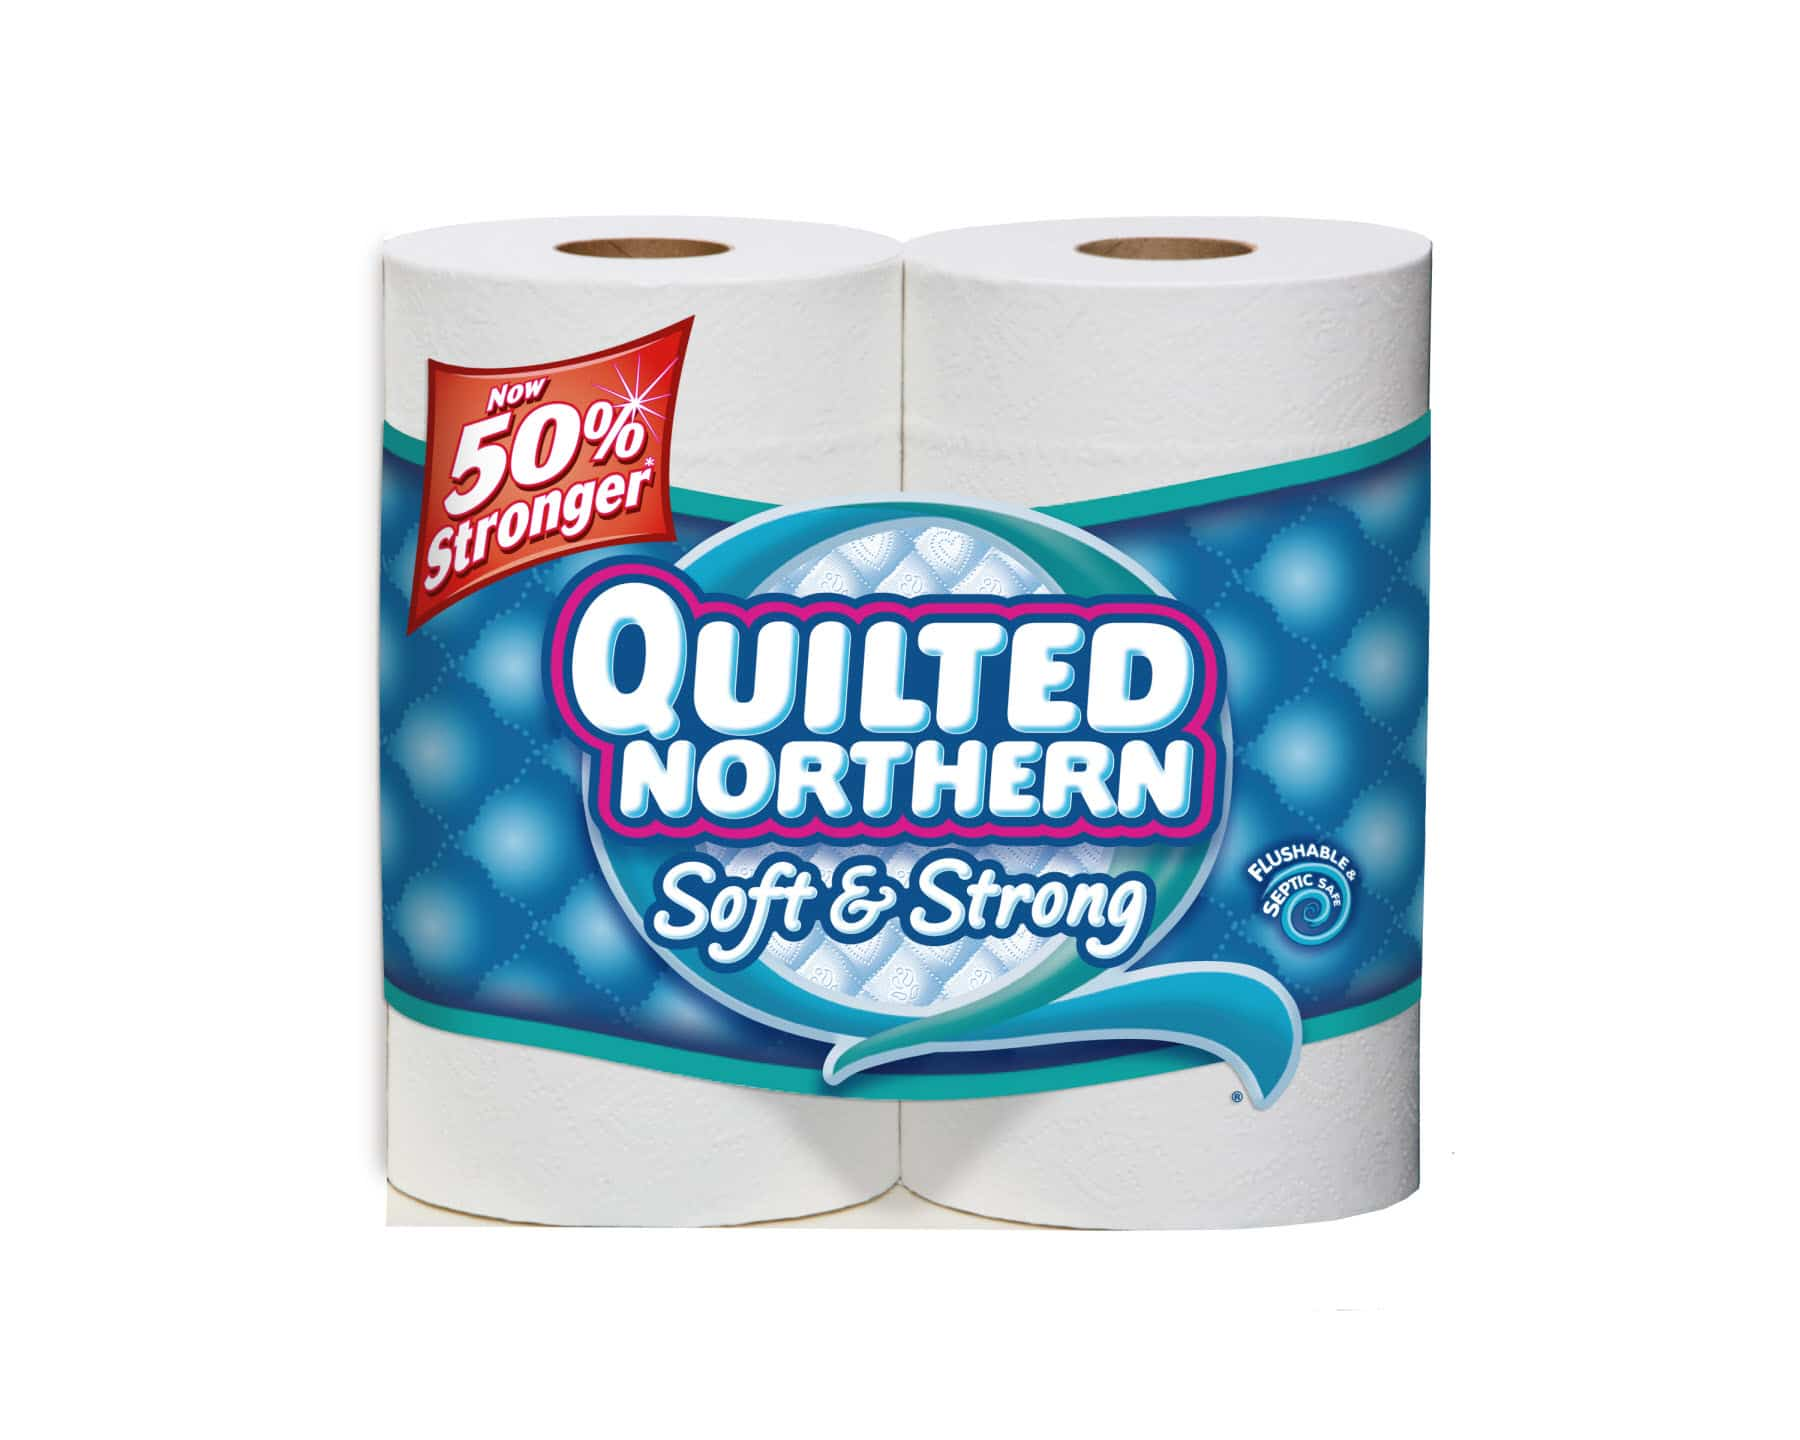 Save $1 off when you buy 1 Quilted Northern (12 double roll) bath tissue